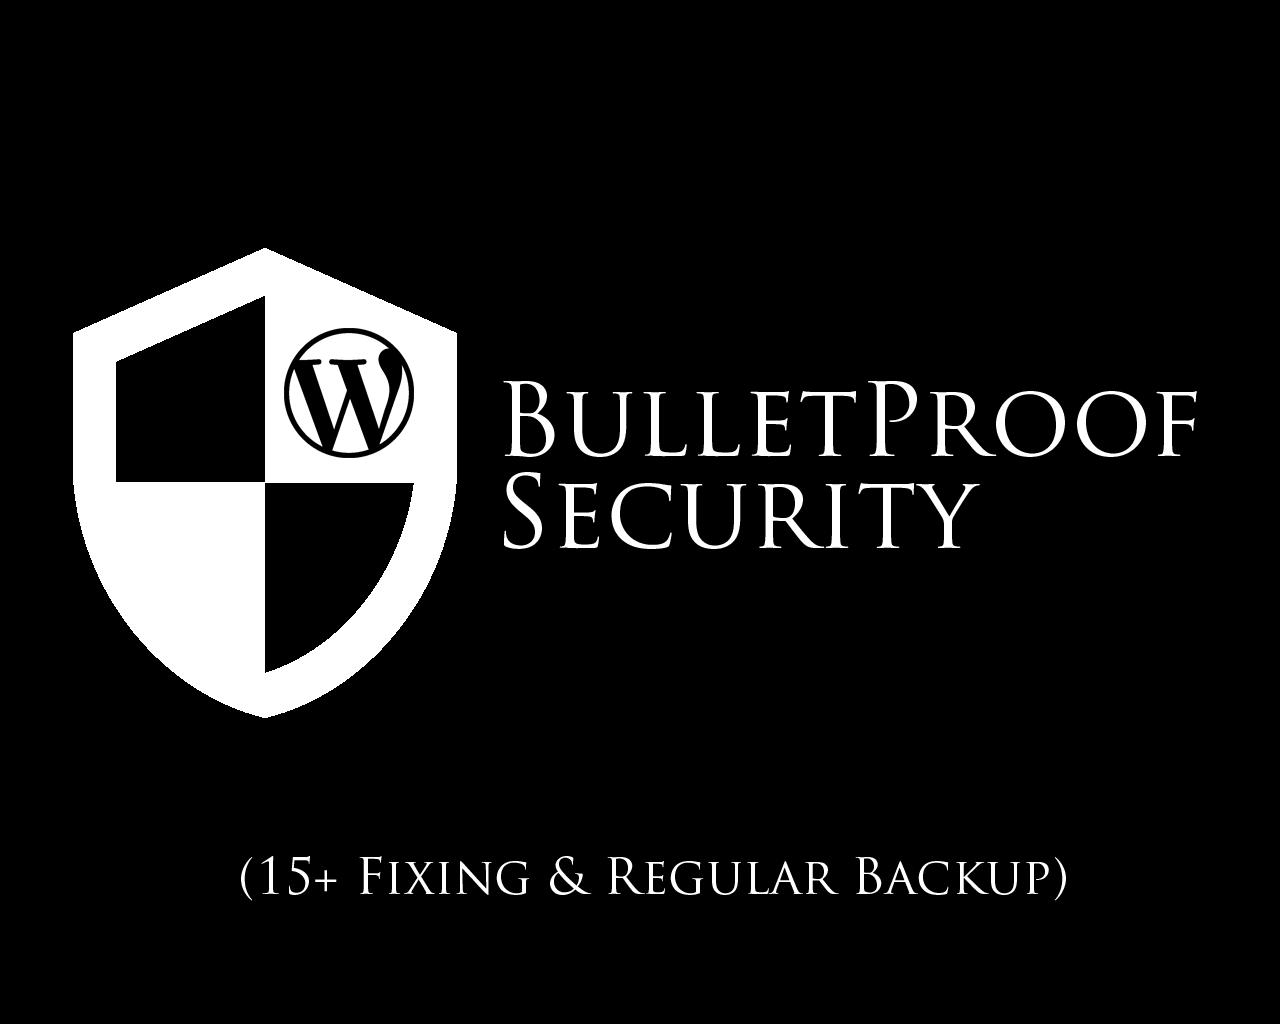 Wordpress BulletProof Security (15+ Error Fixing & Strong Security Setup) by hasanet - 101009